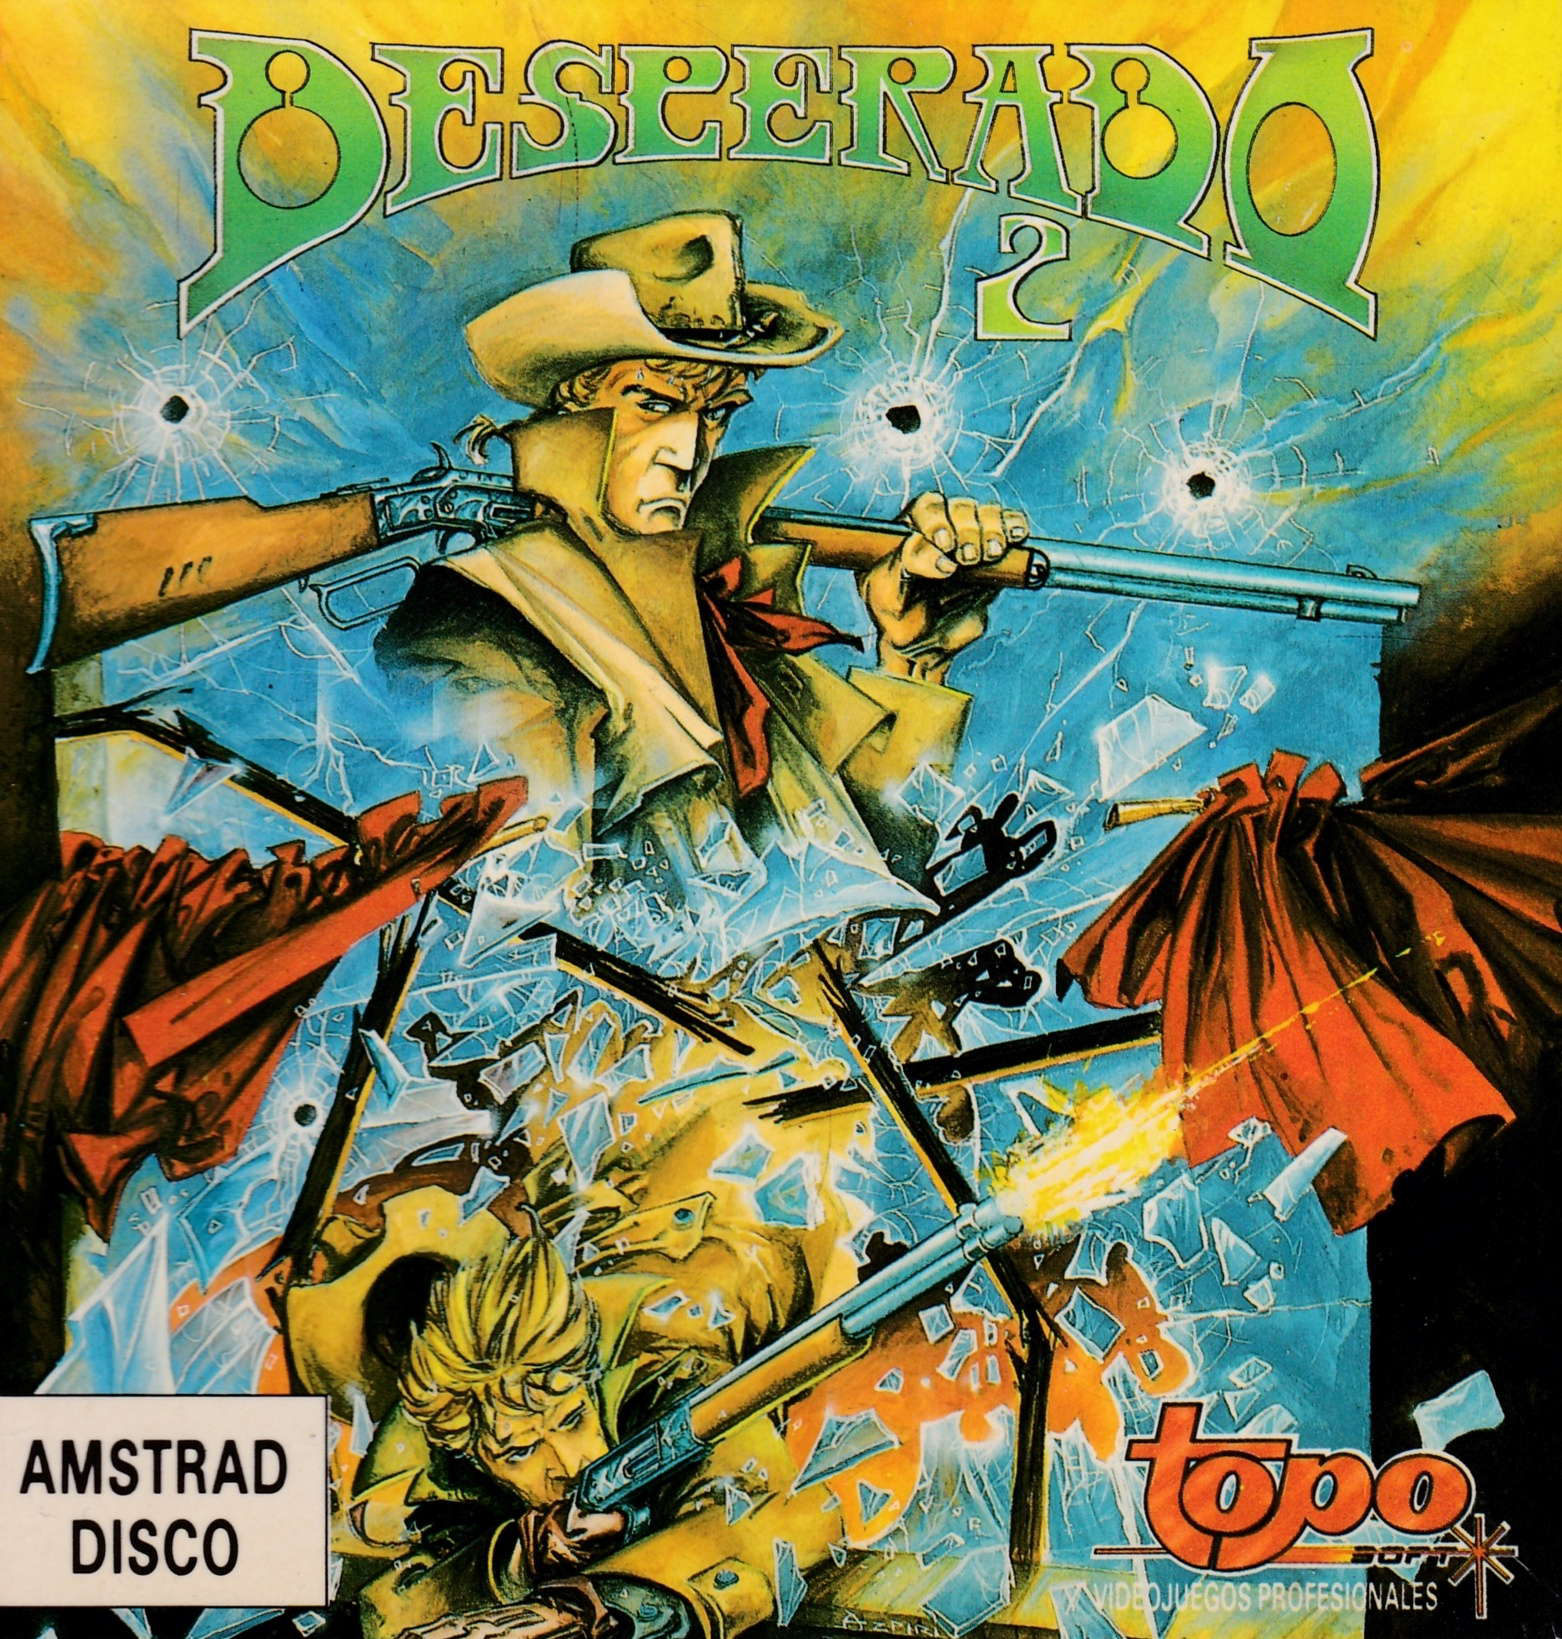 cover of the Amstrad CPC game Desperado 2  by GameBase CPC